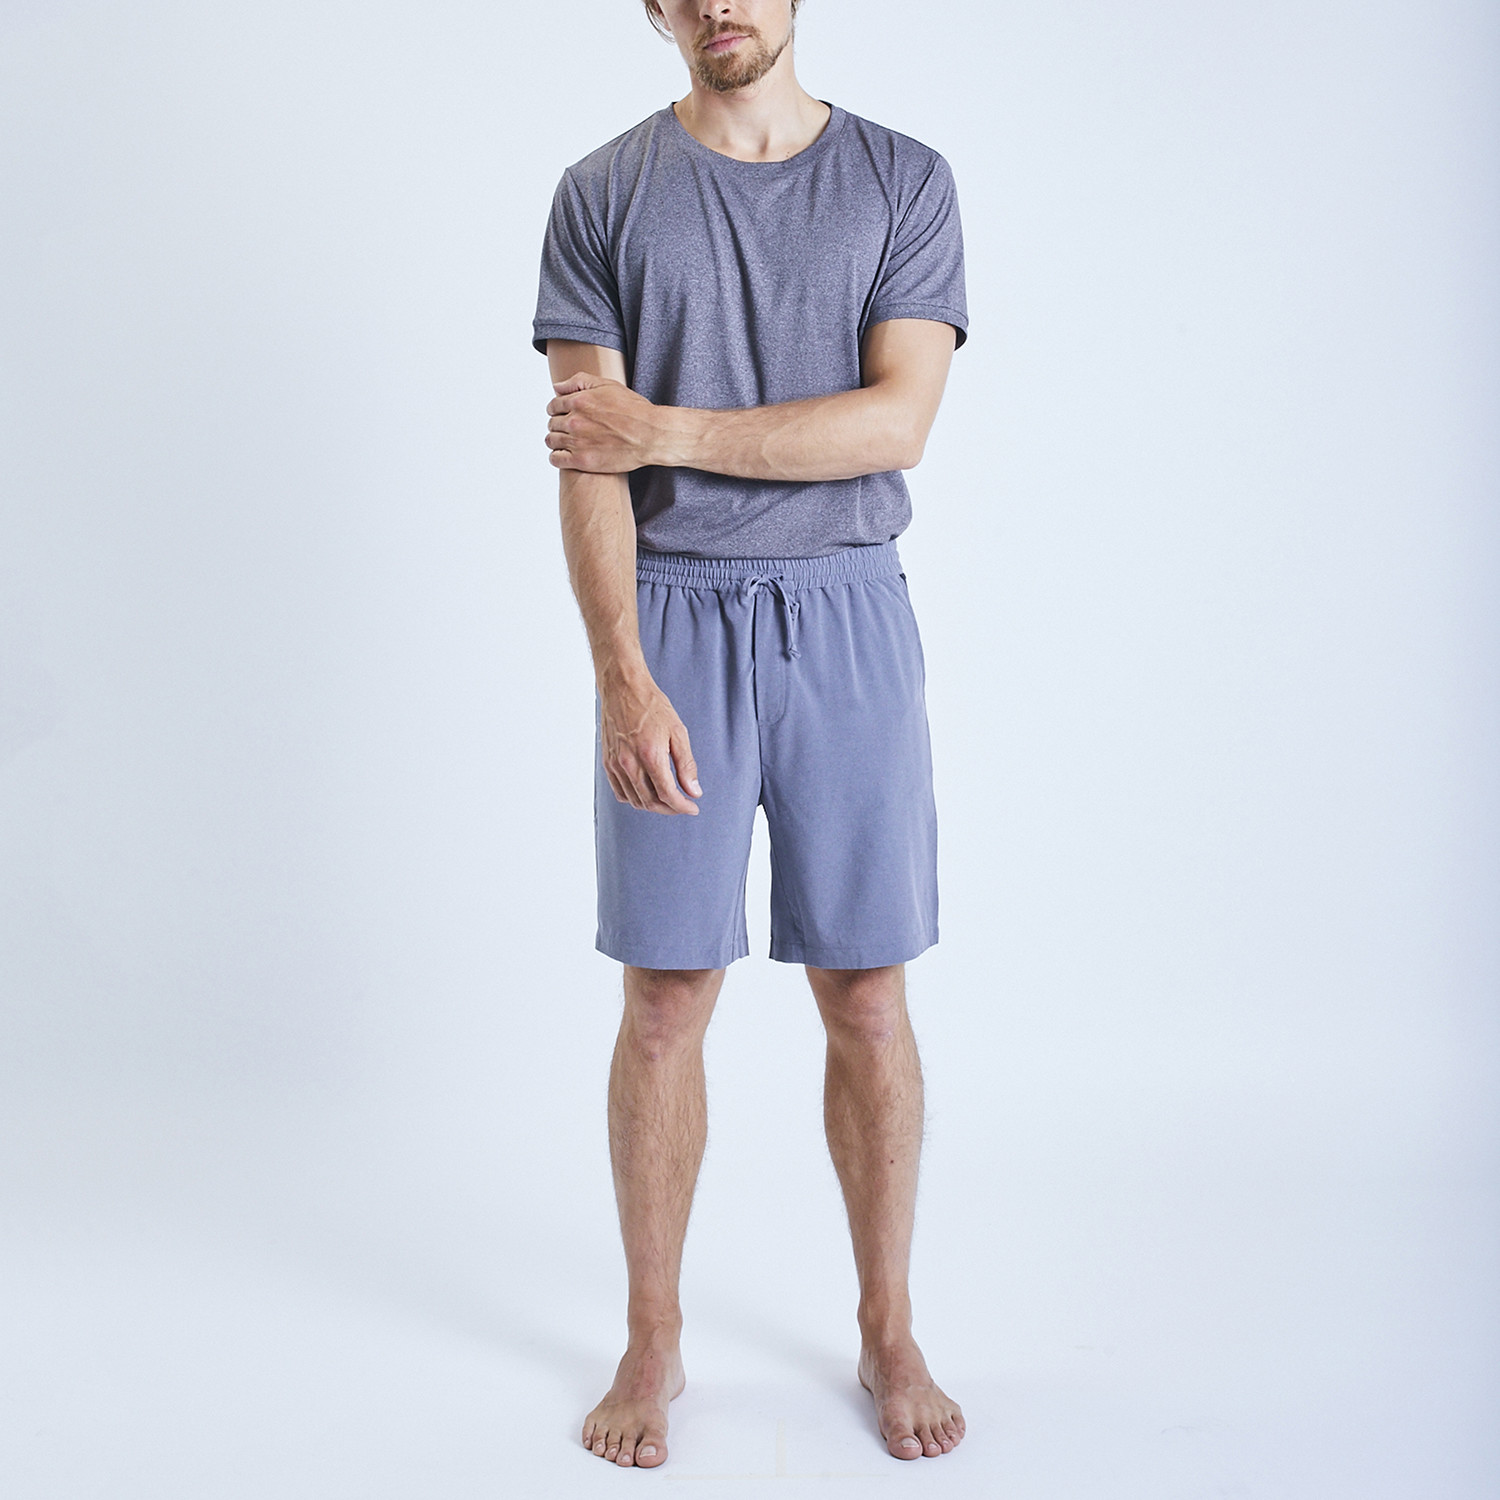 355c7be1d6 Eco Warrior II Shorts // Slate (S) - OHMME - Touch of Modern